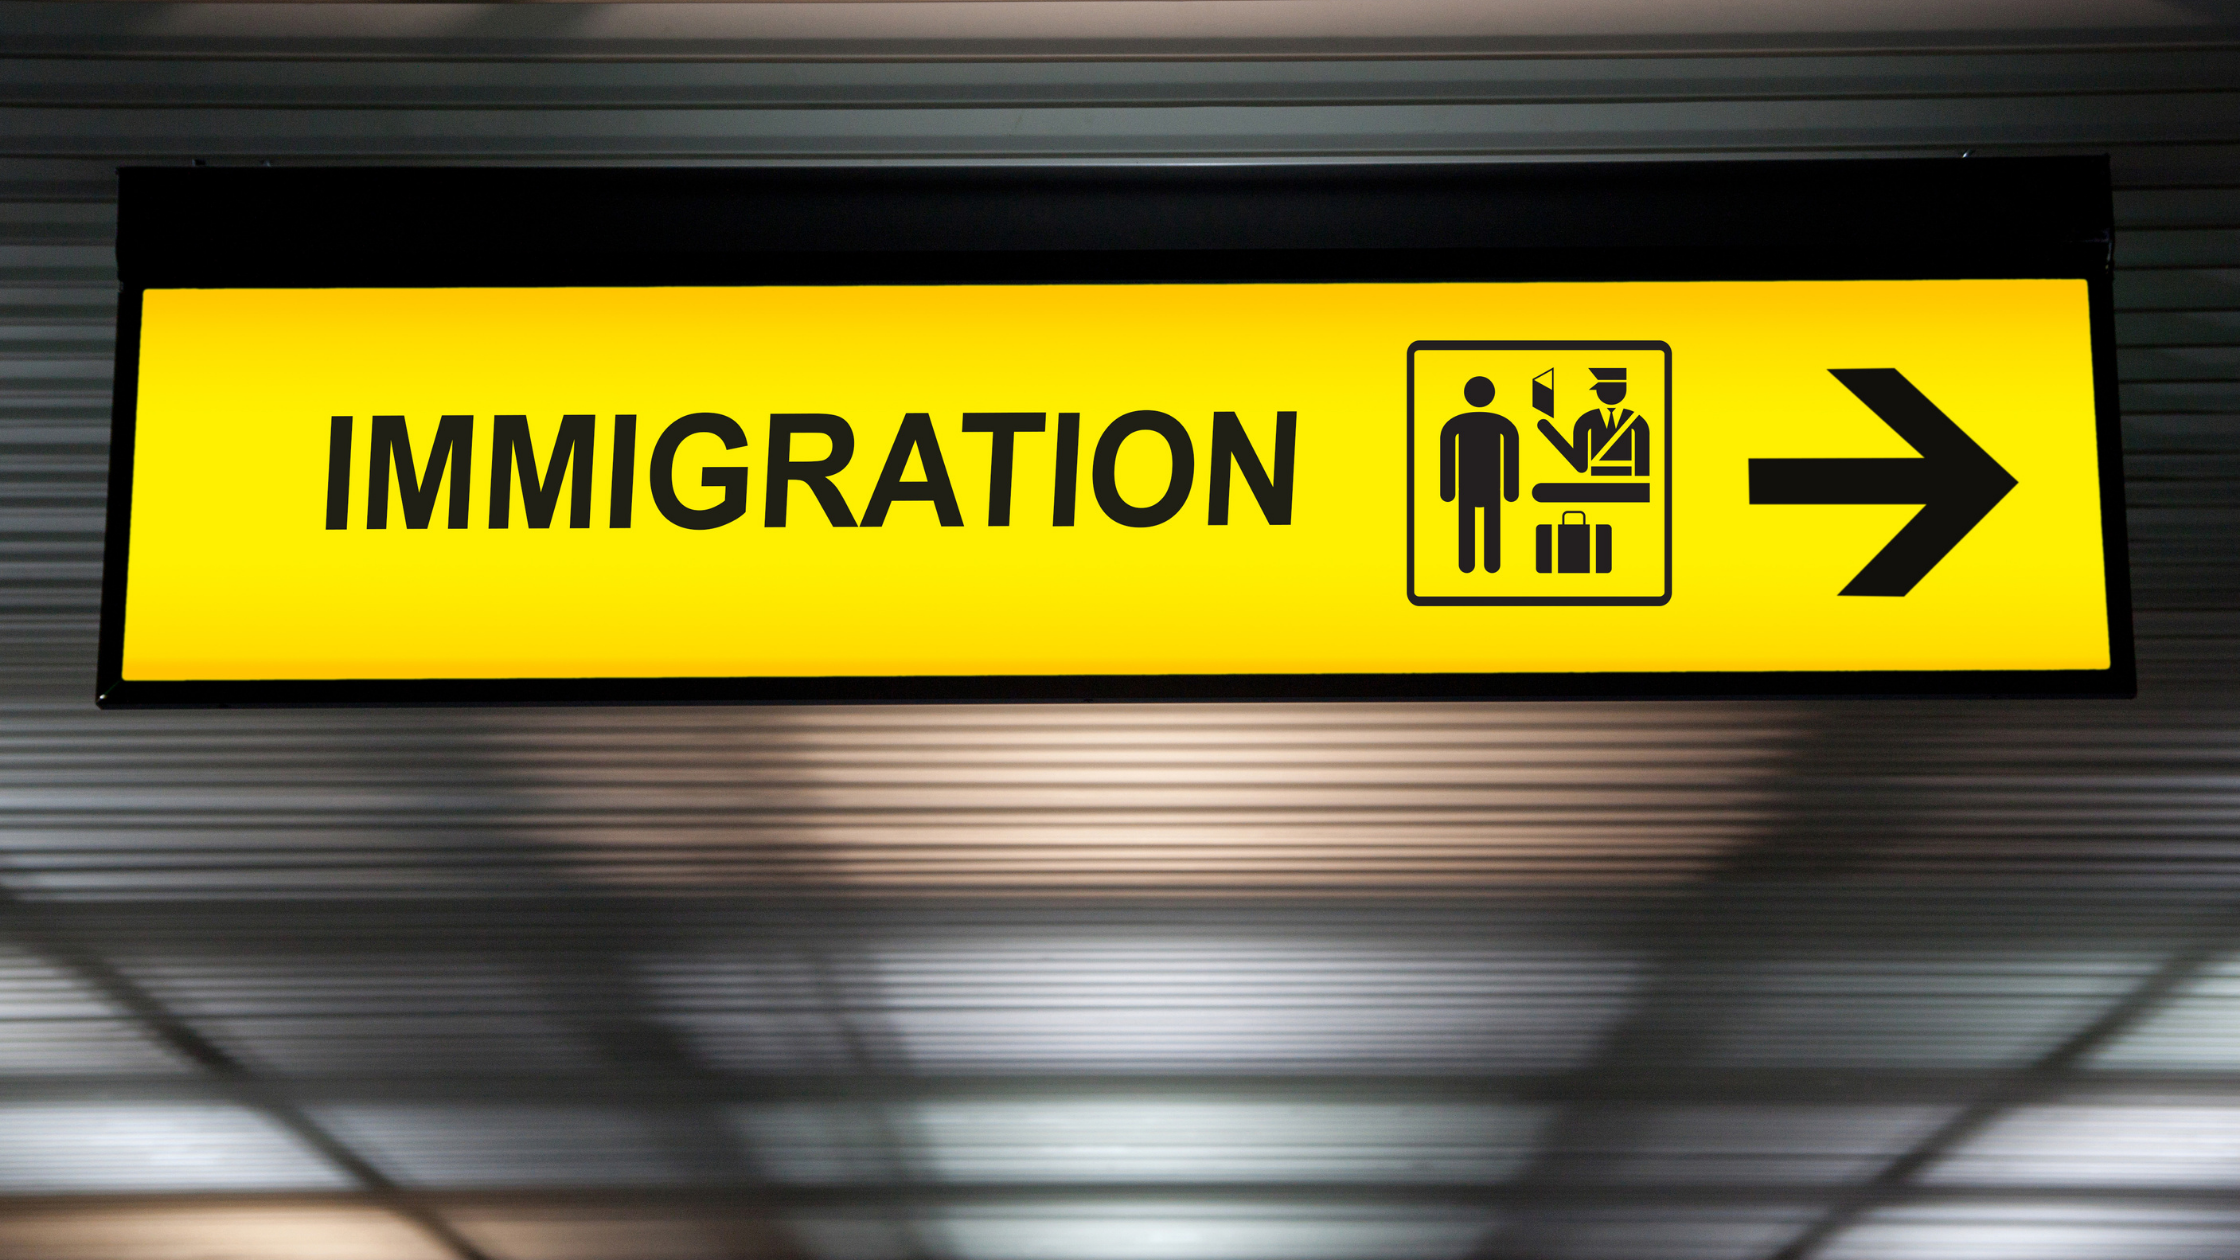 IGIS Top 5 Reasons Why You Should Consider Immigration as Your Next Career